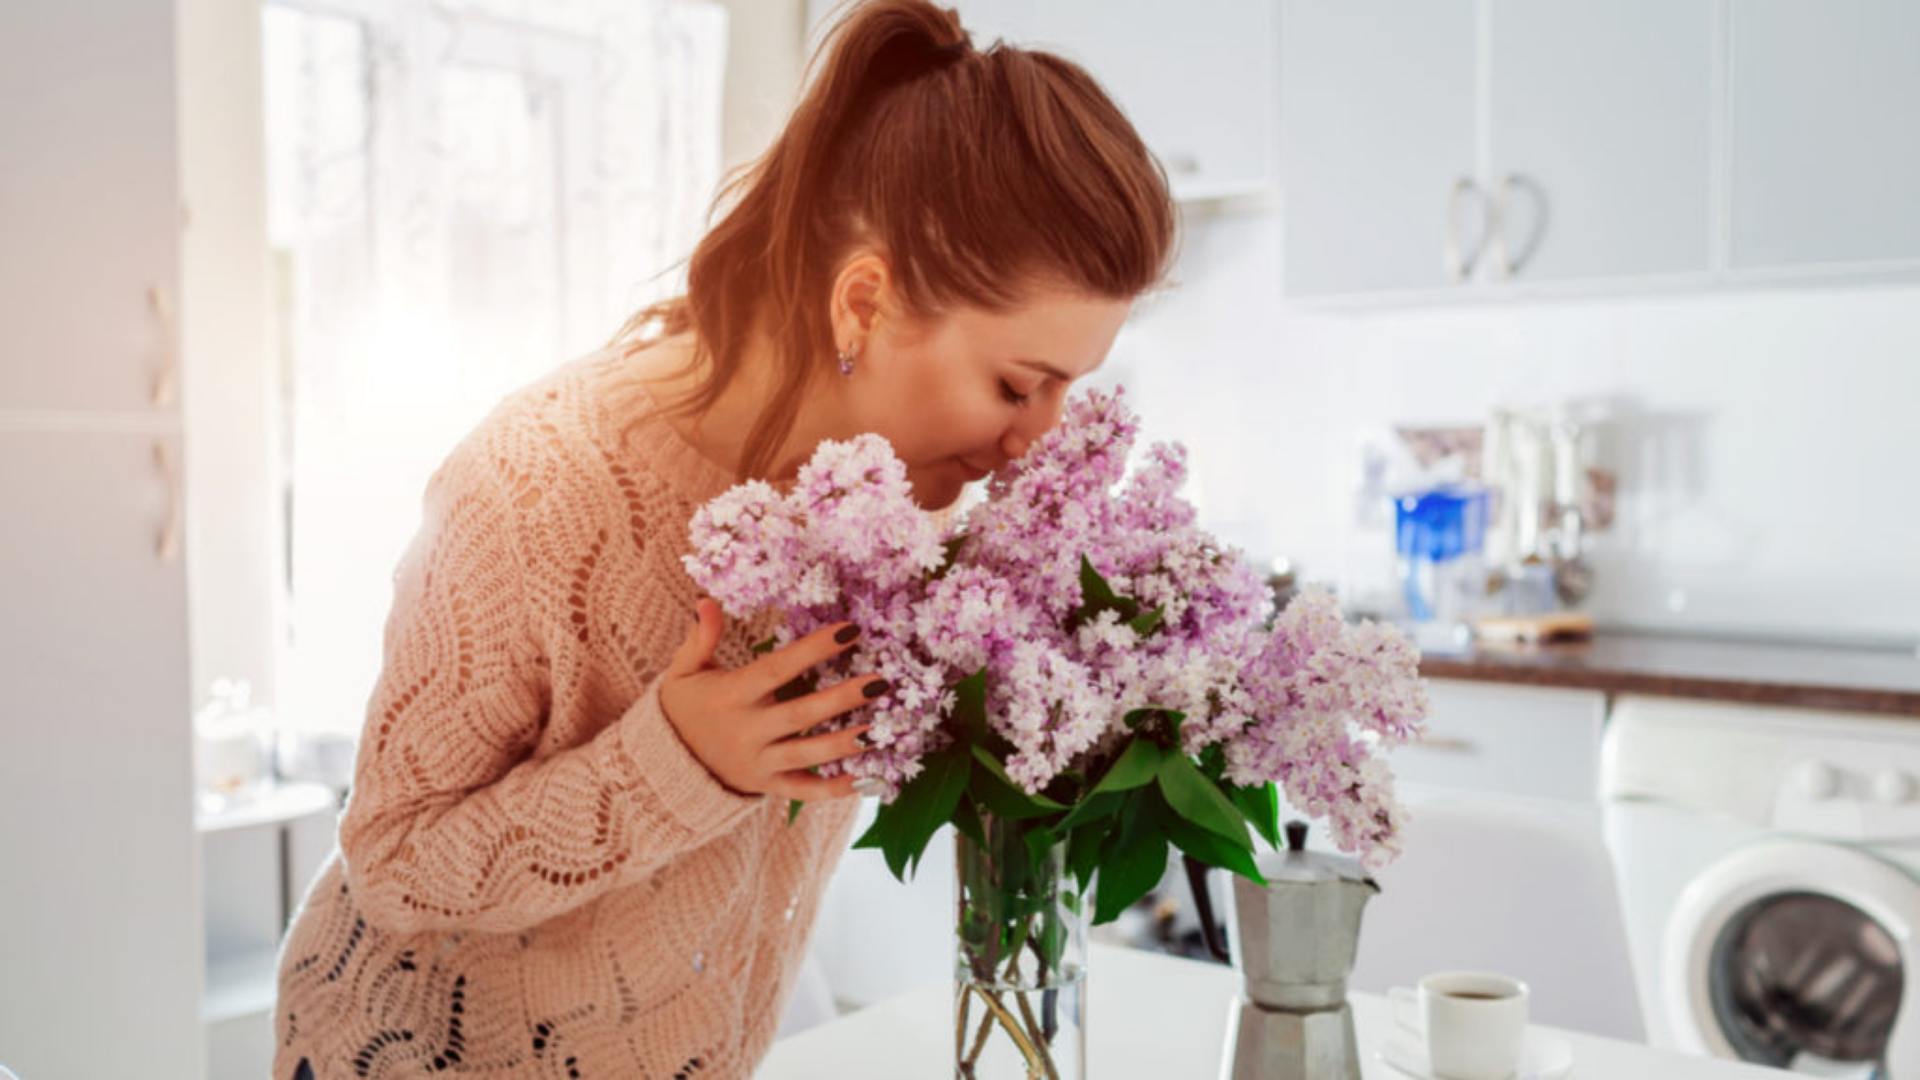 Change your home, change your diet, control your allergies